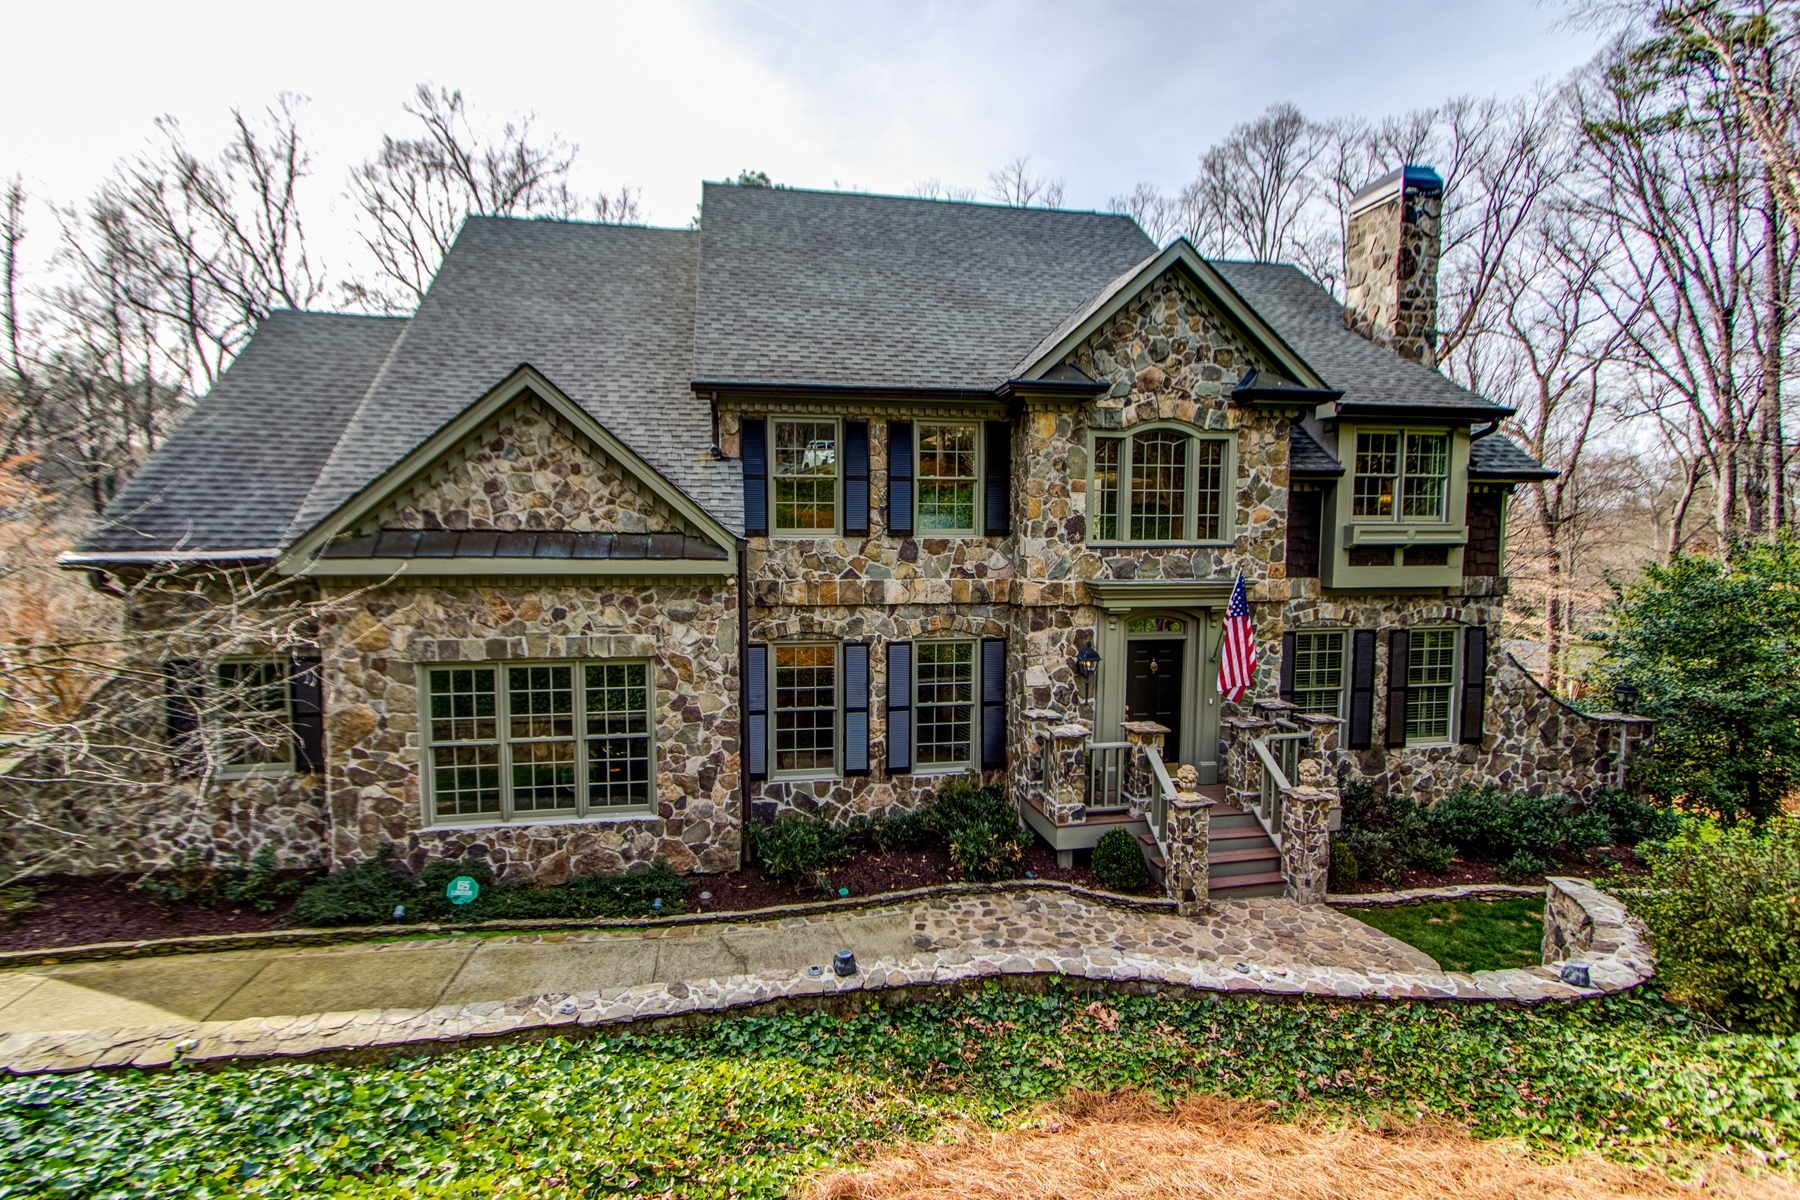 단독 가정 주택 용 매매 에 Wonderful Home In Sarah Smith School District 787 Brookhaven Springs Court NE Brookhaven, Atlanta, 조지아, 30342 미국